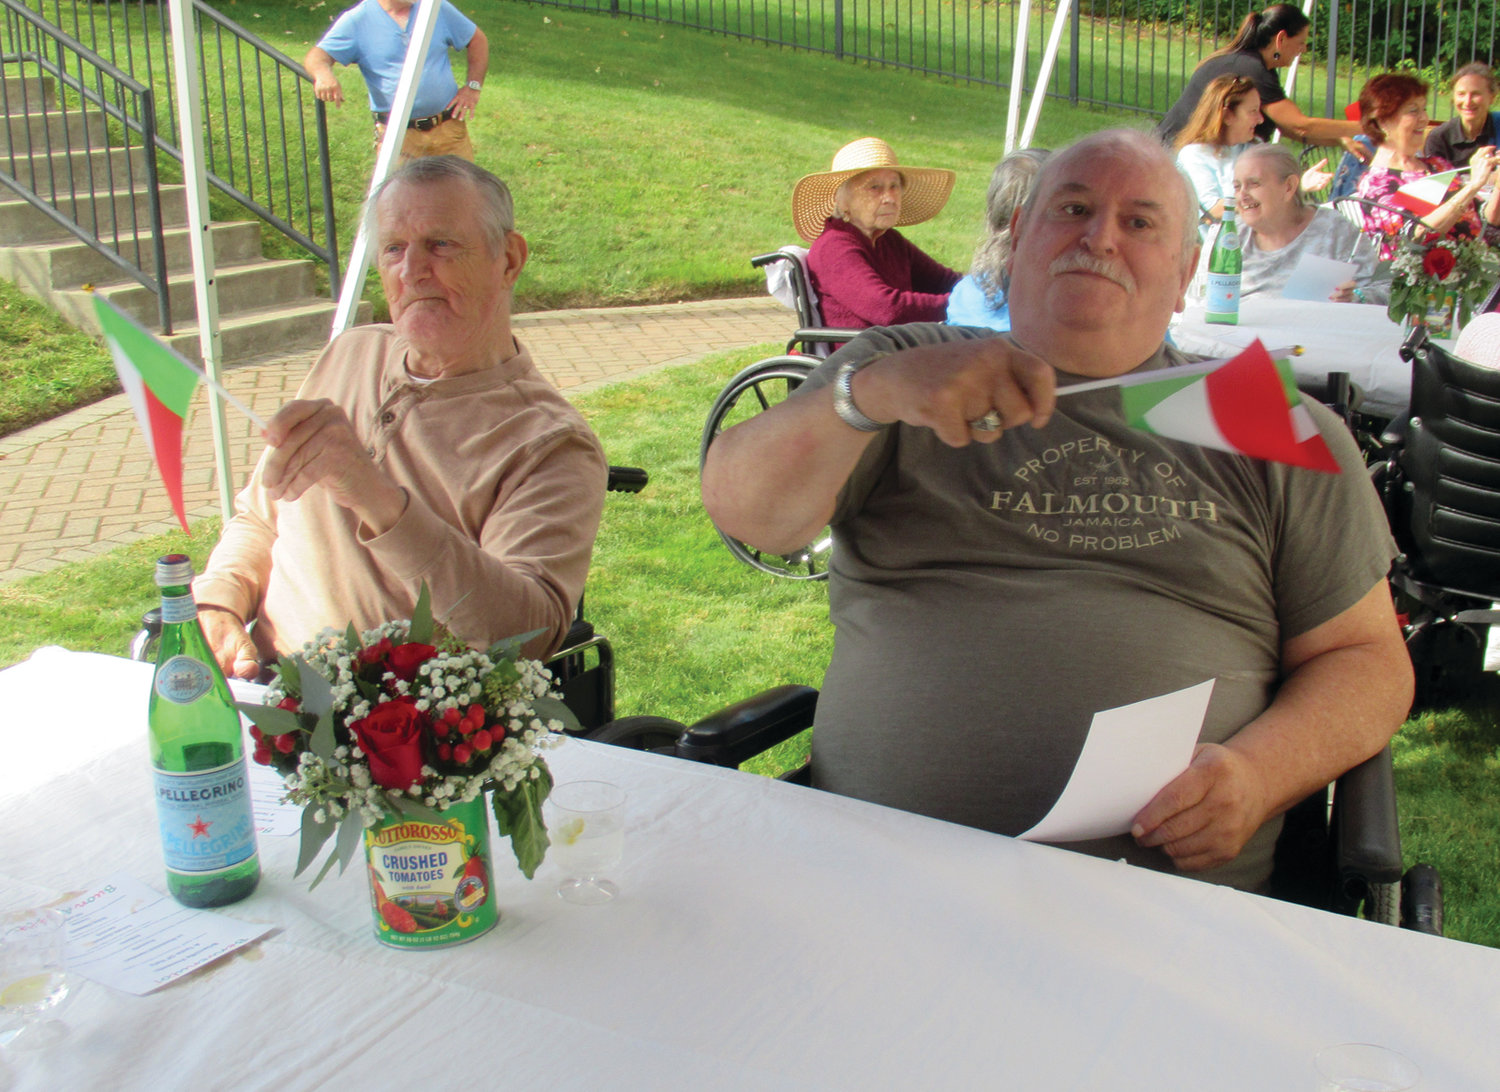 FLAG FUN: These Briarcliffe Manor residents raised – and waved – small Italian flags that were all part of Tuesday's fun and food-filled Taste of Italy.